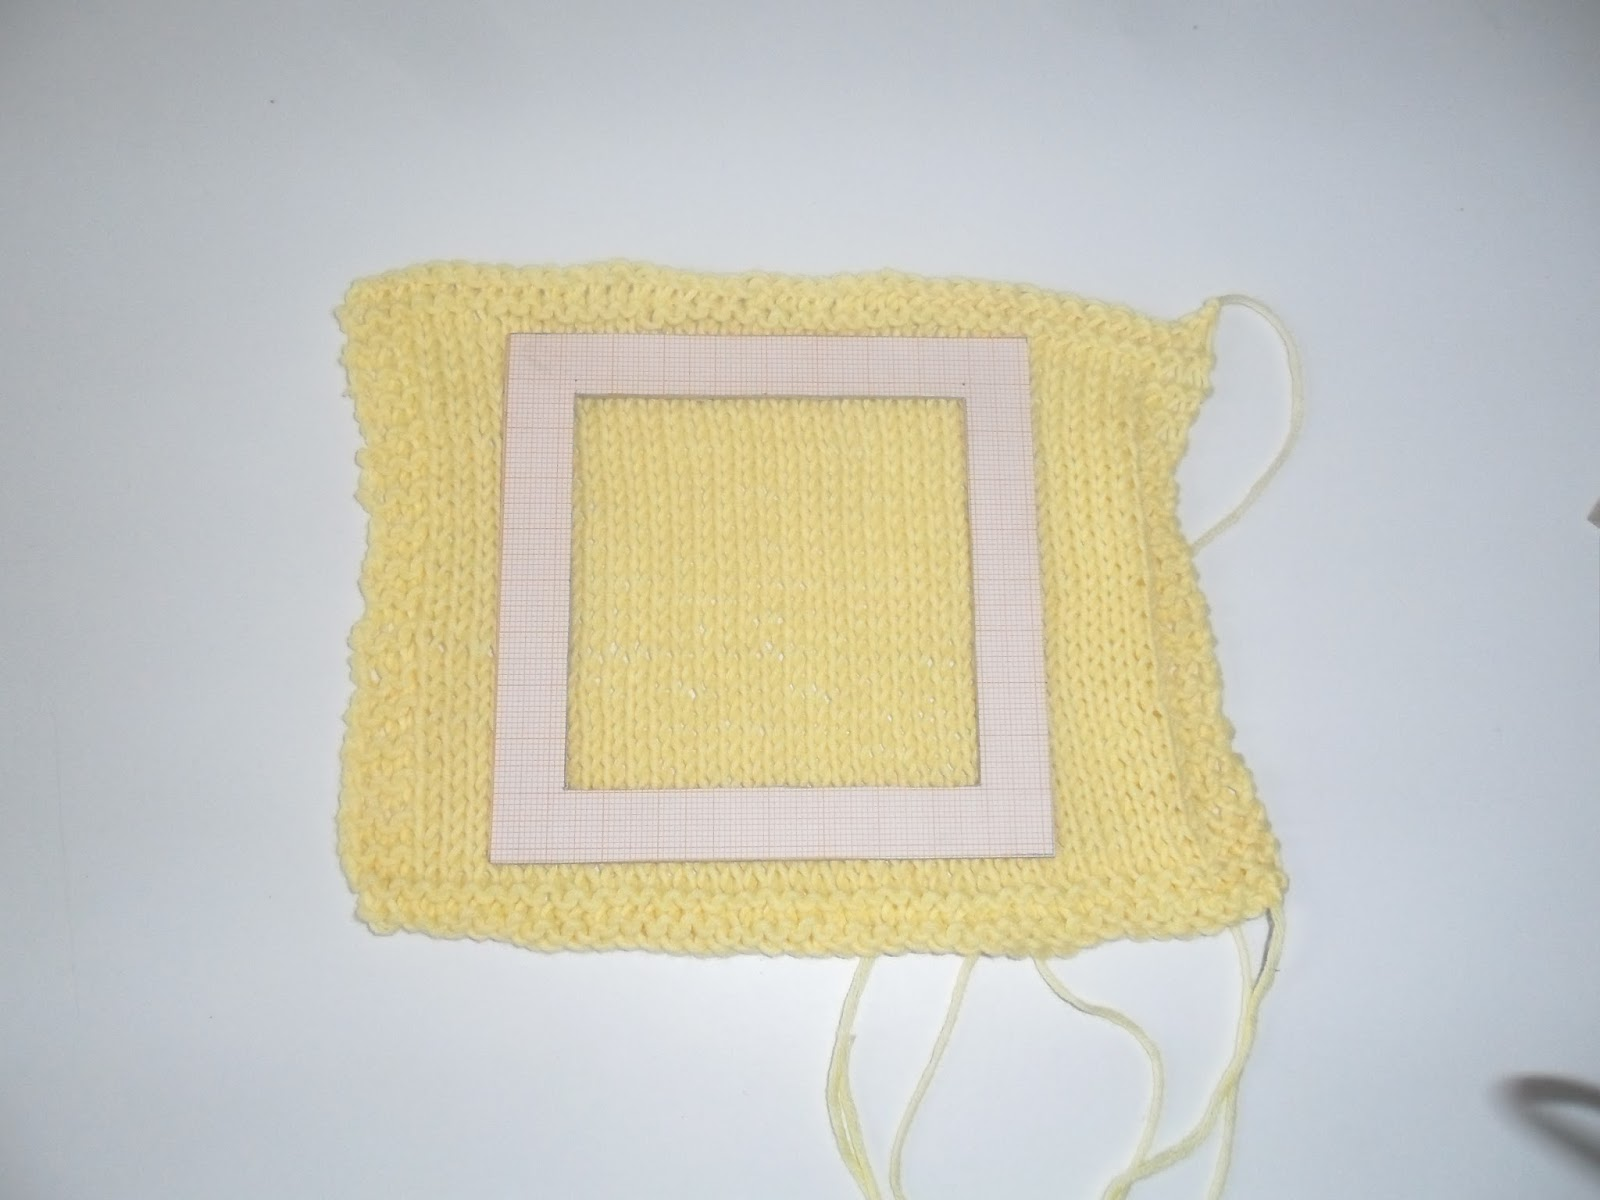 How To Measure Stitches Per Inch Knitting : Olive Groves and Doll Knits: Easy DIY template for measuring Knitting Gauge.